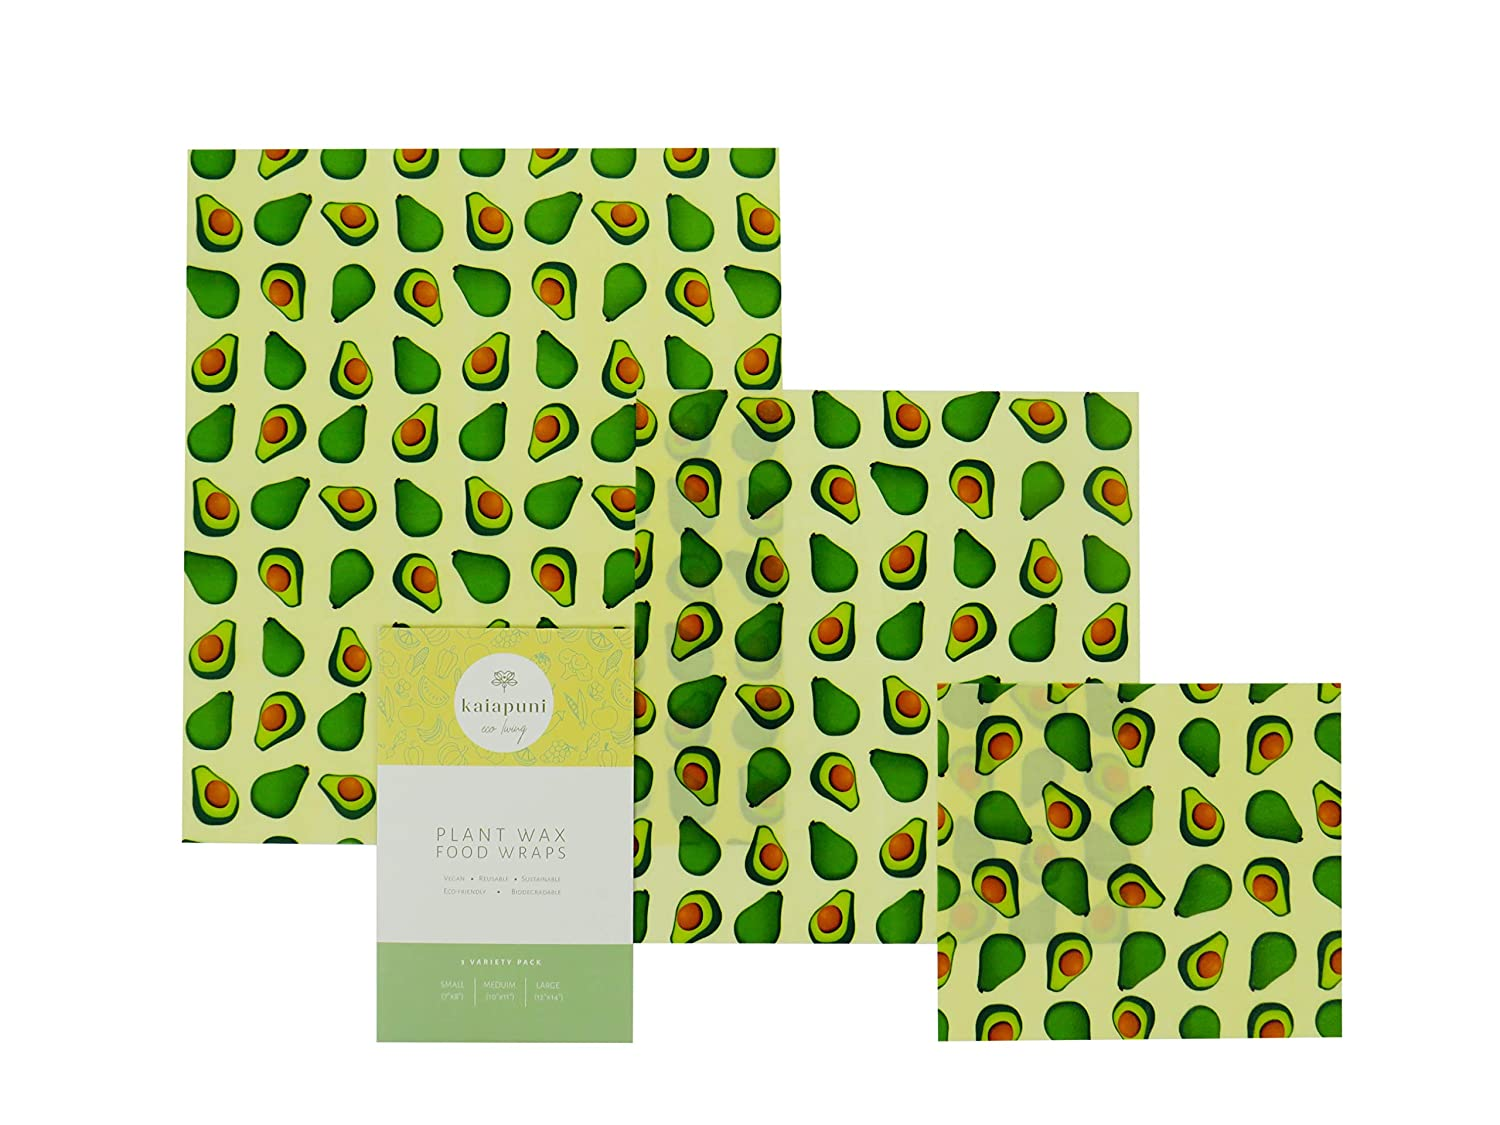 Vegan Reusable Wax Food Wrap No Beeswax Cling Film Alternative Waxed Paper For Food The Perfect Eco Friendly Gift Organic Cotton Set Of 3